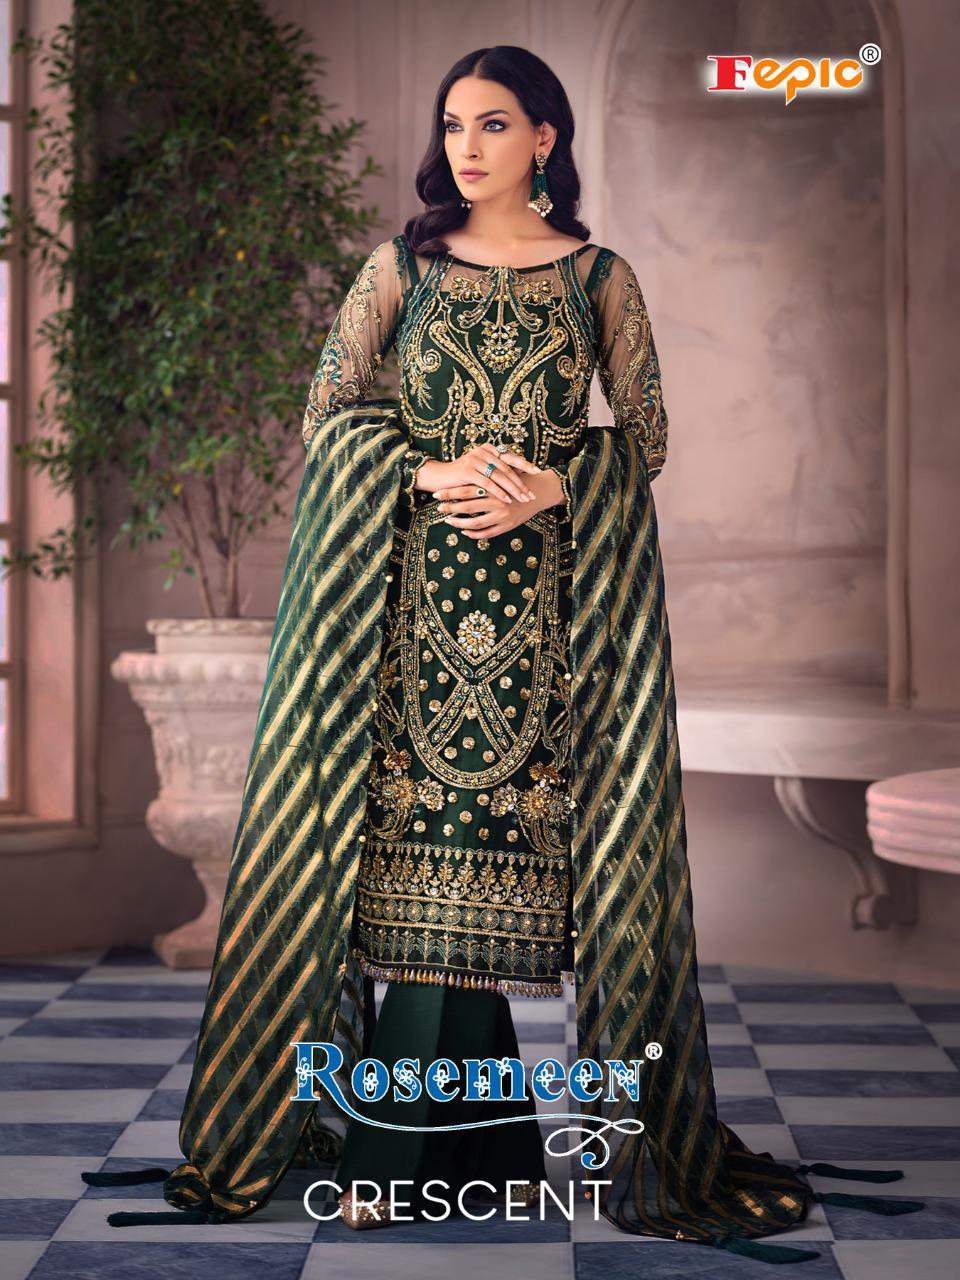 Fepic Rosemeen Crescent Net Heavy Embroidered With Handwork Suits Wholesale